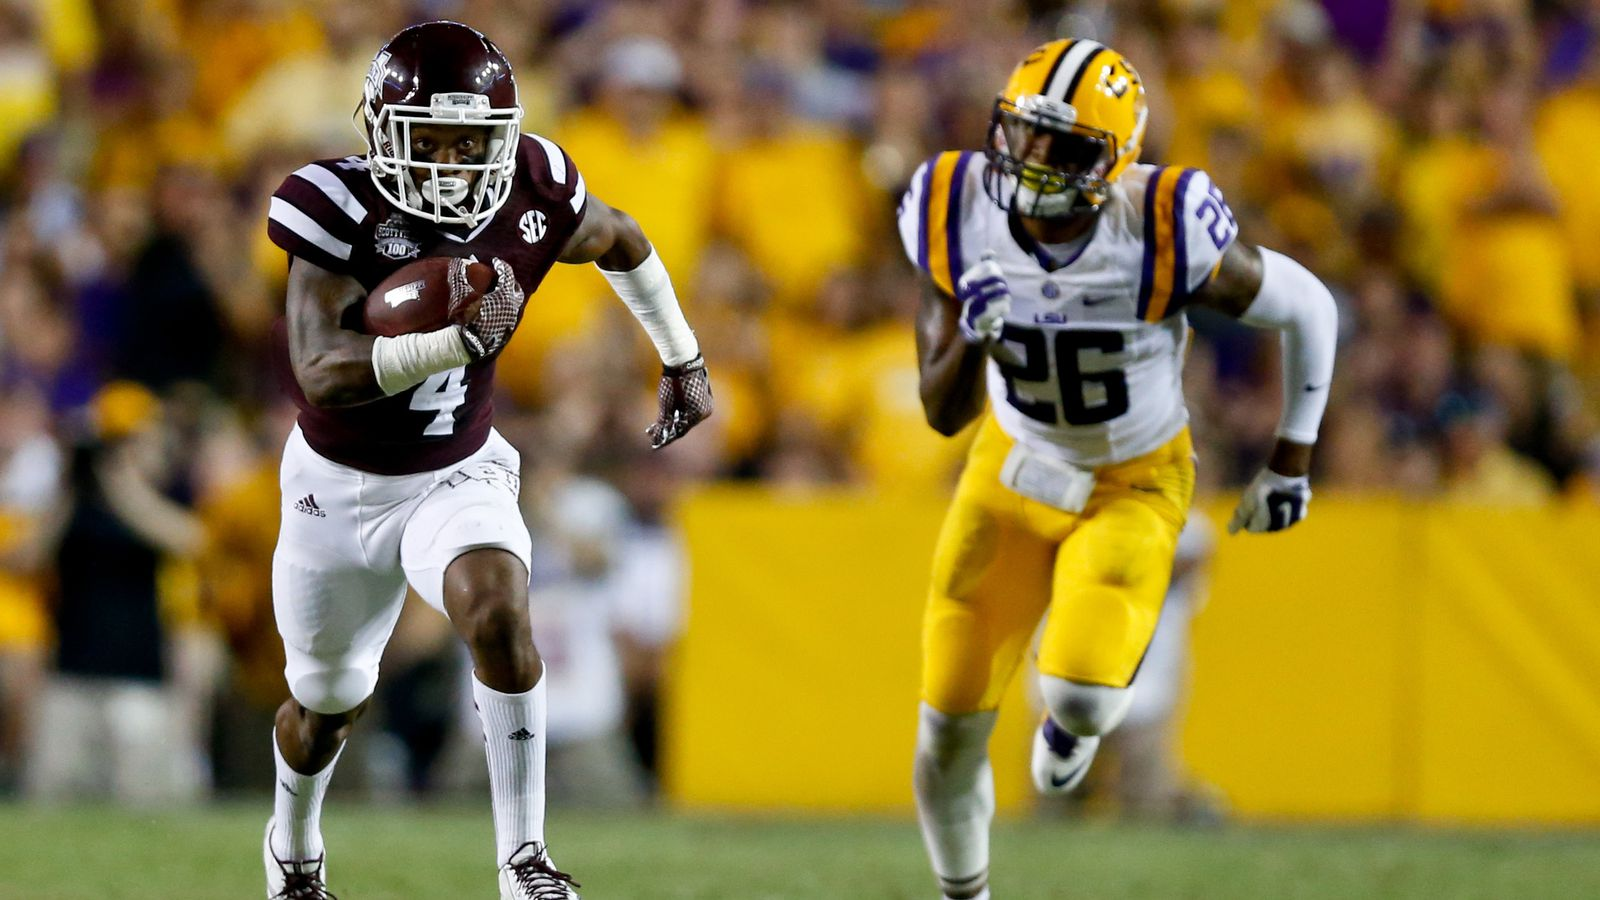 How To Watch Lsu Vs Mississippi State On Tv Or Online